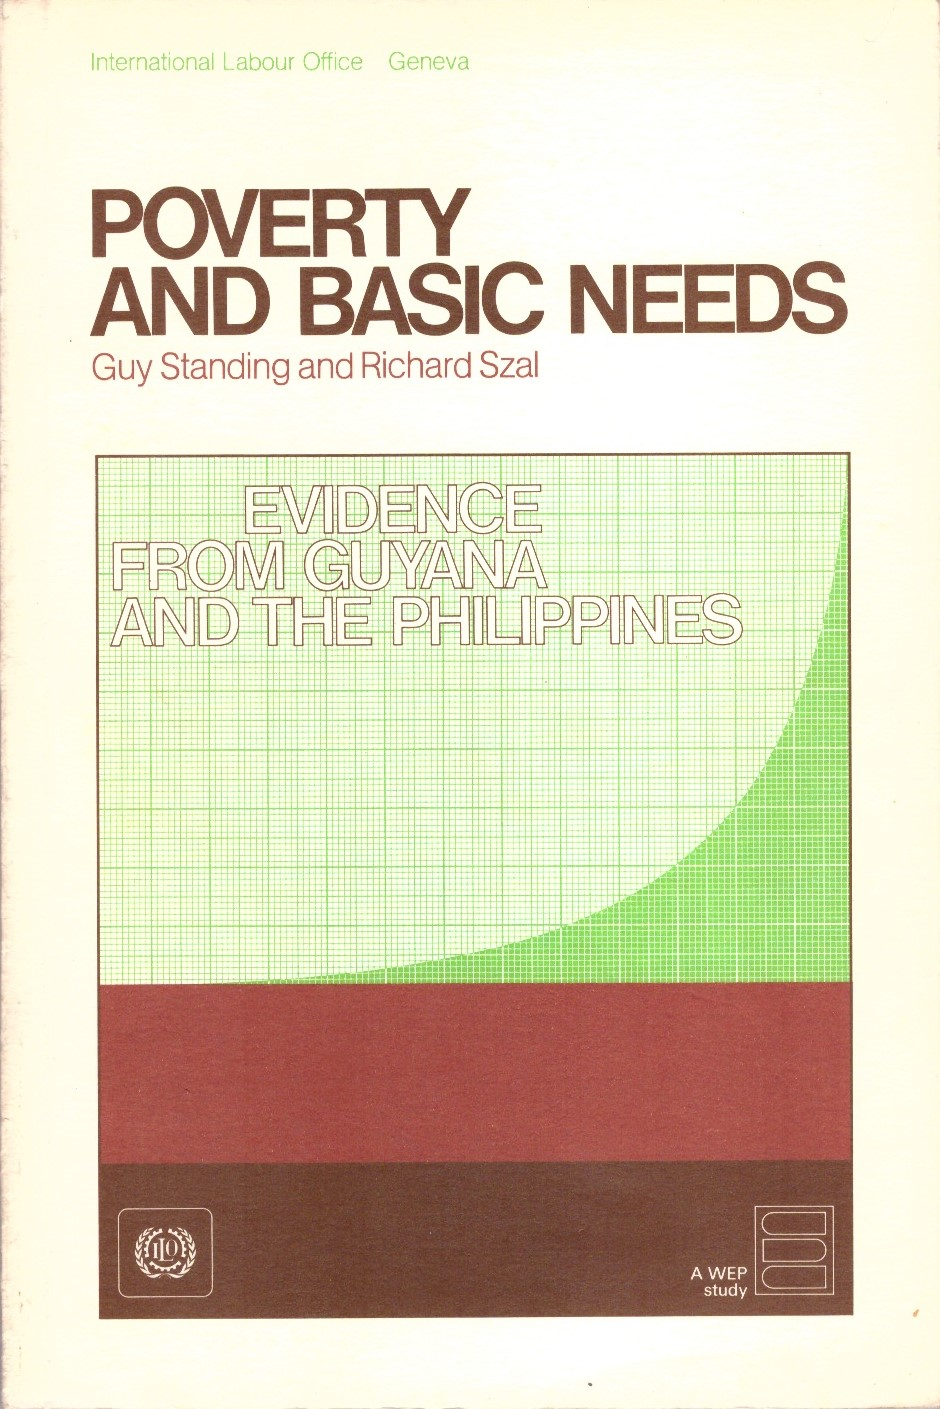 Poverty and Basic Needs: Evidence from Guyana and the Philippines , with R. Szal (Geneva: ILO, 1979).     Details